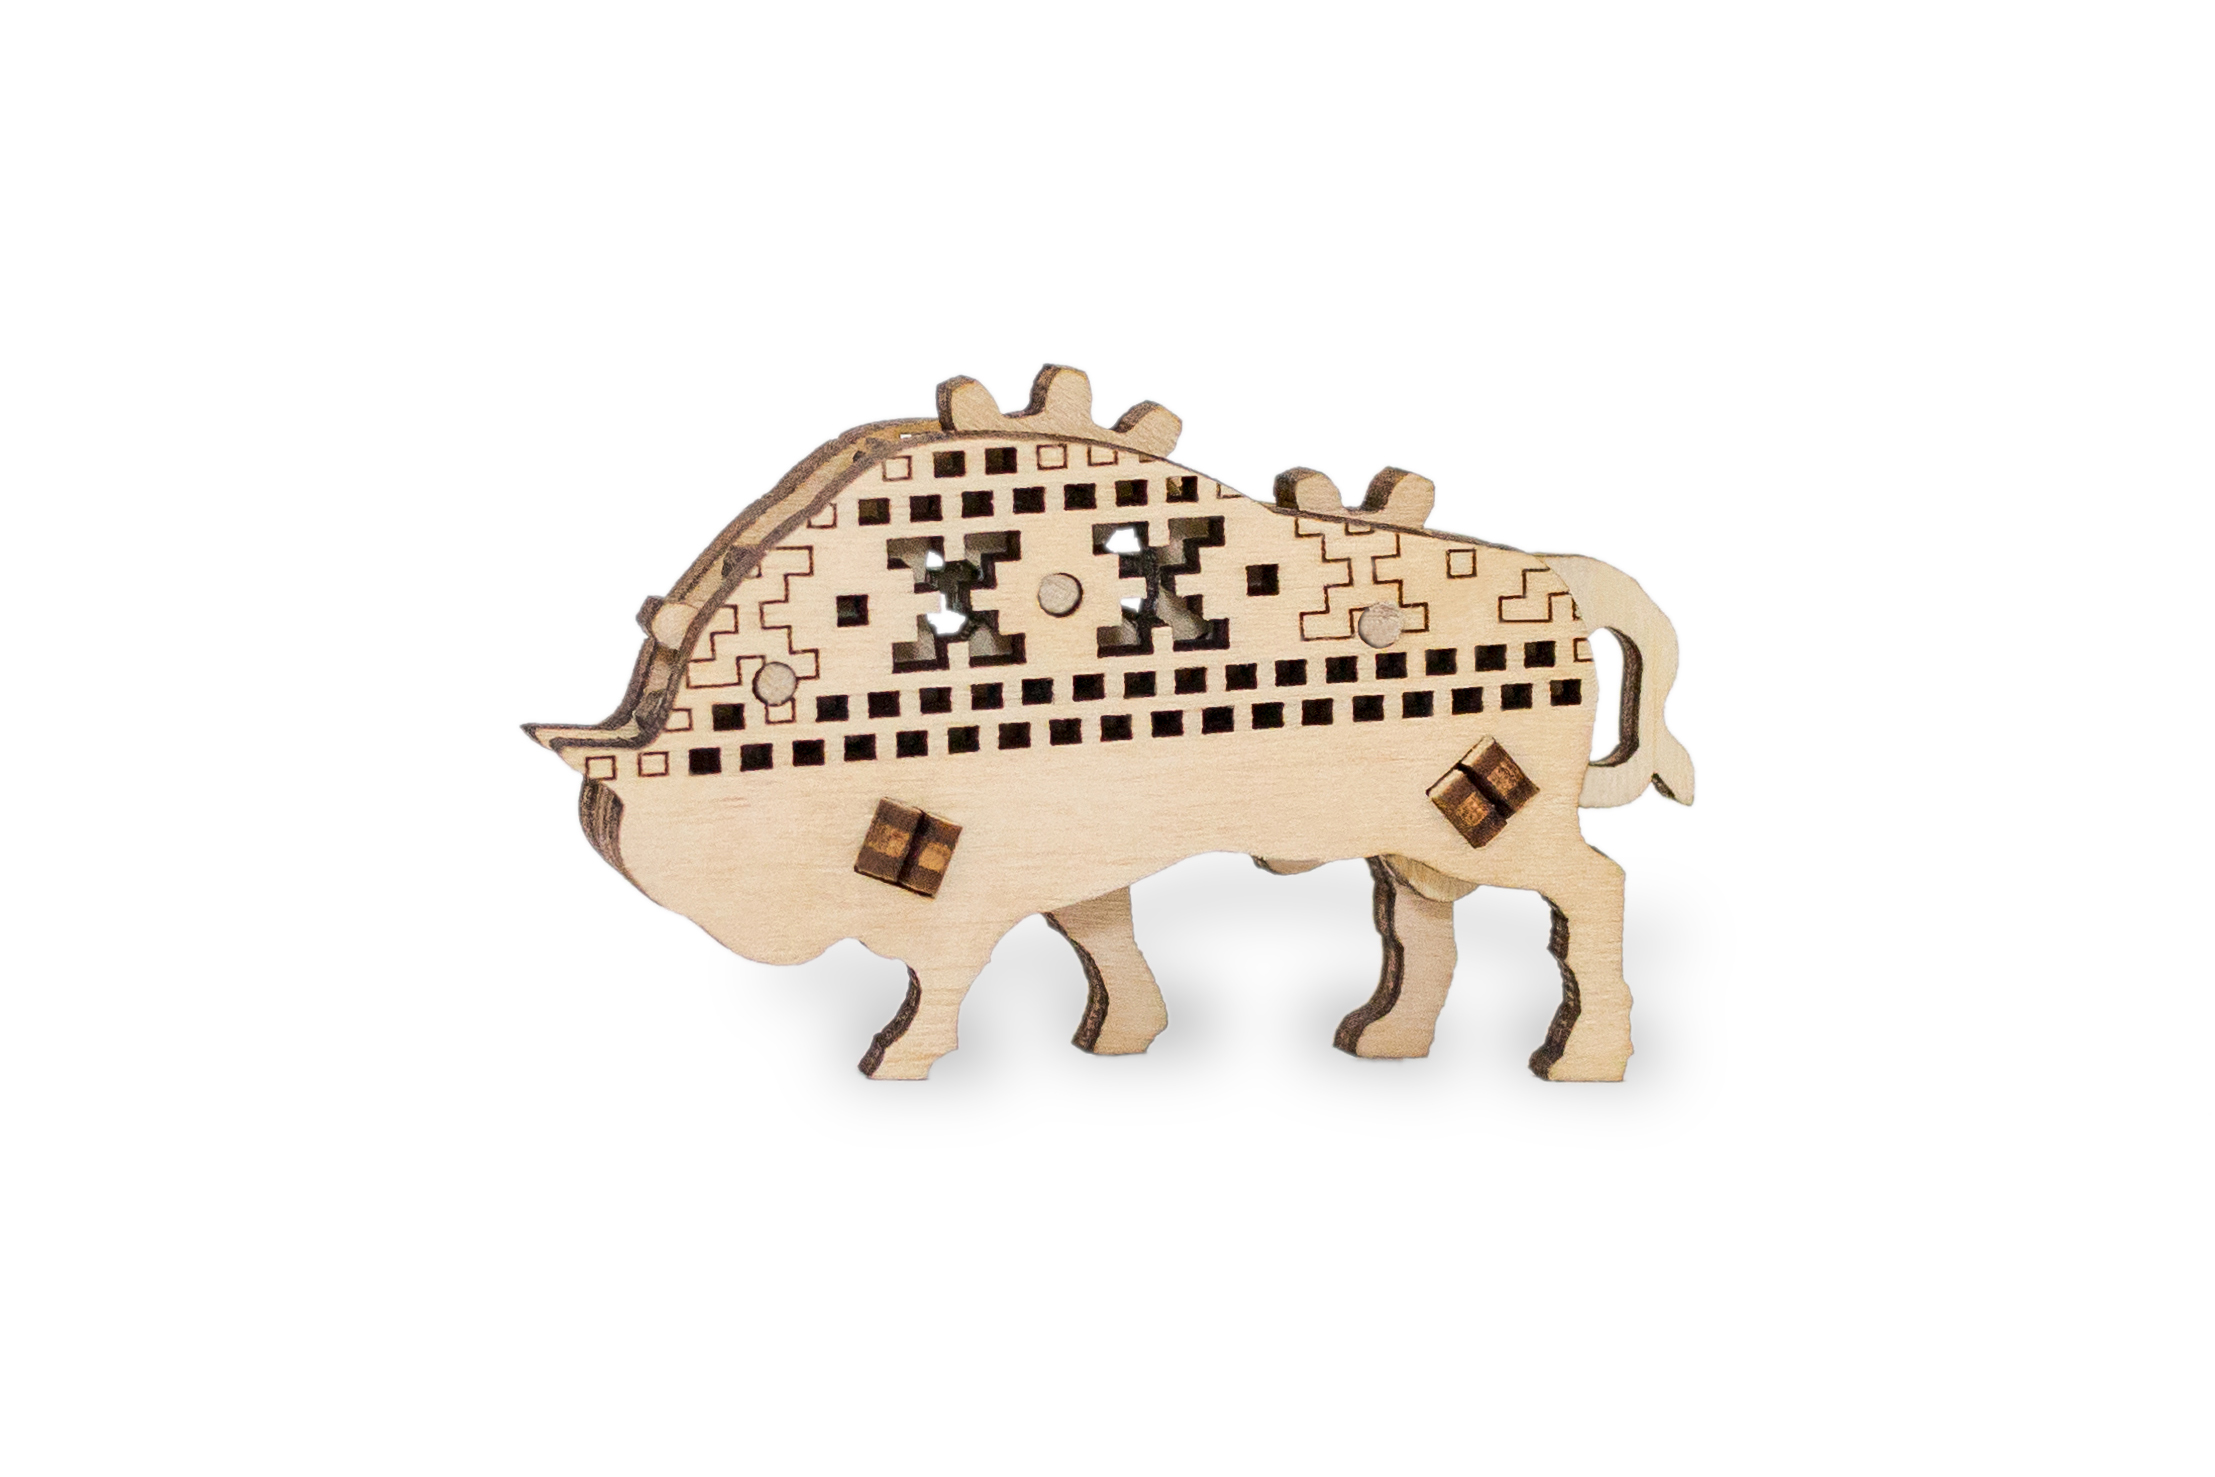 eco-wood-art-3d-holzpuzzle-bison-11-teile-puzzle-eco-wood-art-52